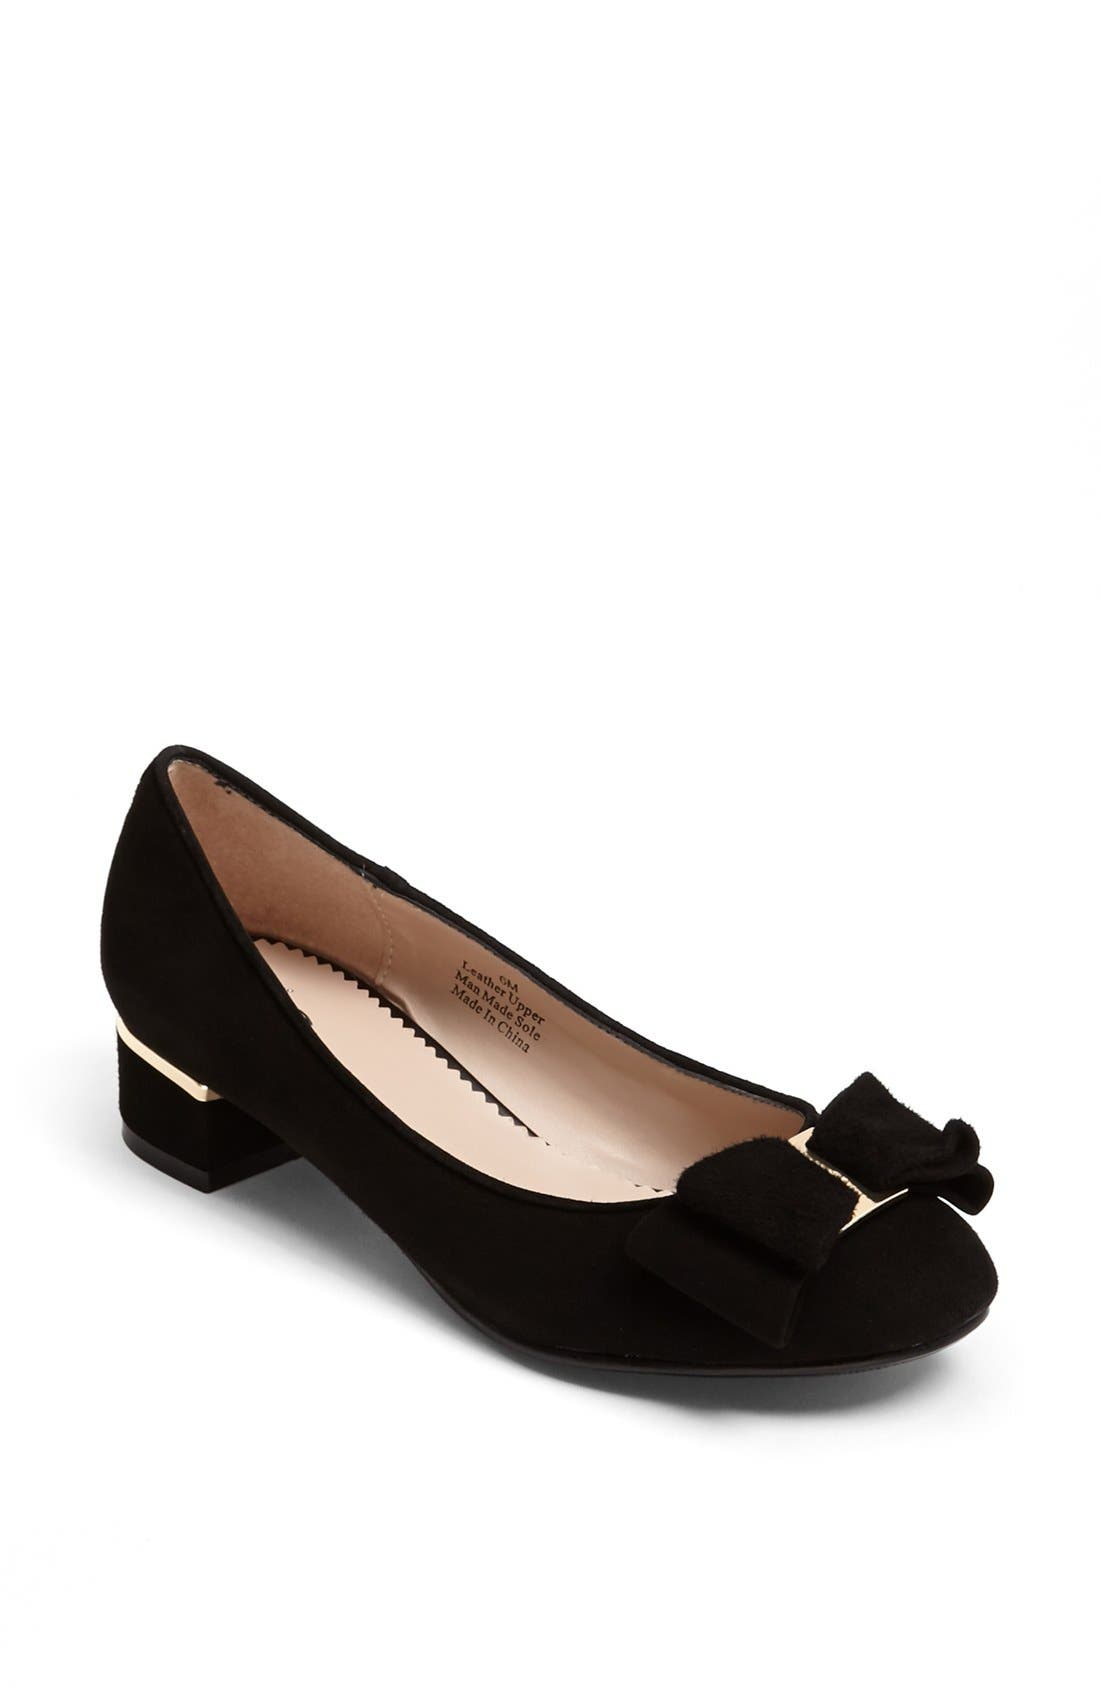 Main Image - BP. 'Penni' Pump (Women)